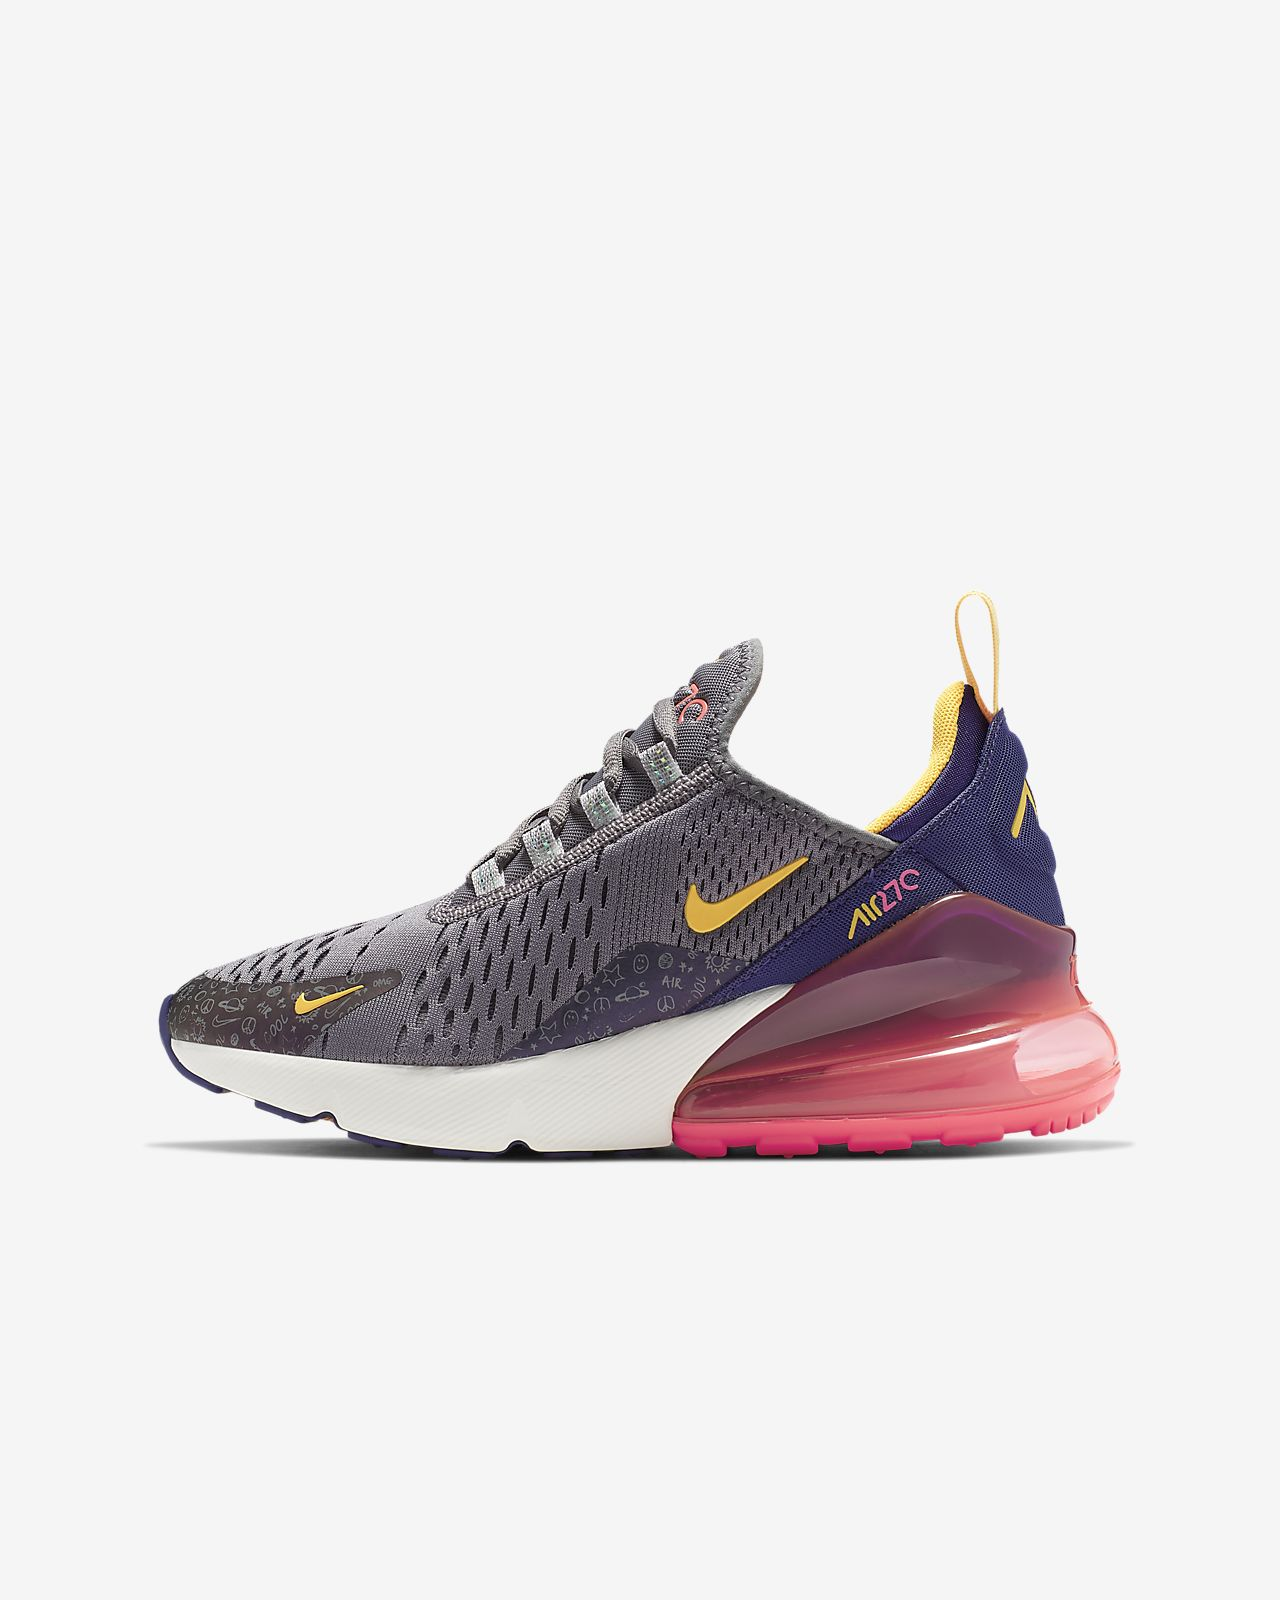 bestia quemado Indomable  Nike Air Max 270 Big Kids' Shoe. Nike.com